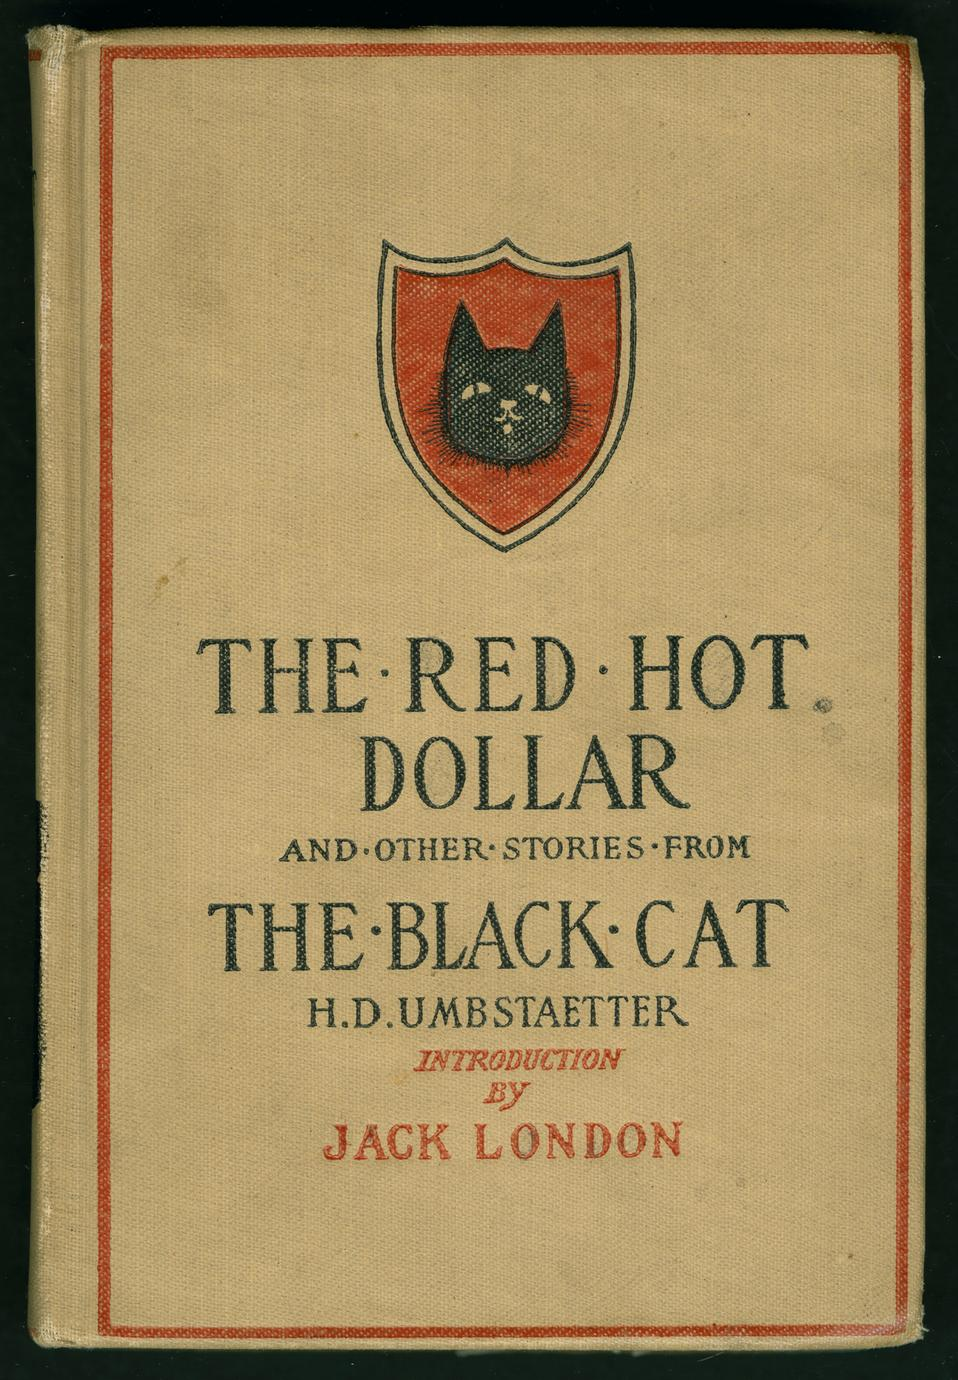 The red-hot dollar, and other stories from the black cat (1 of 3)